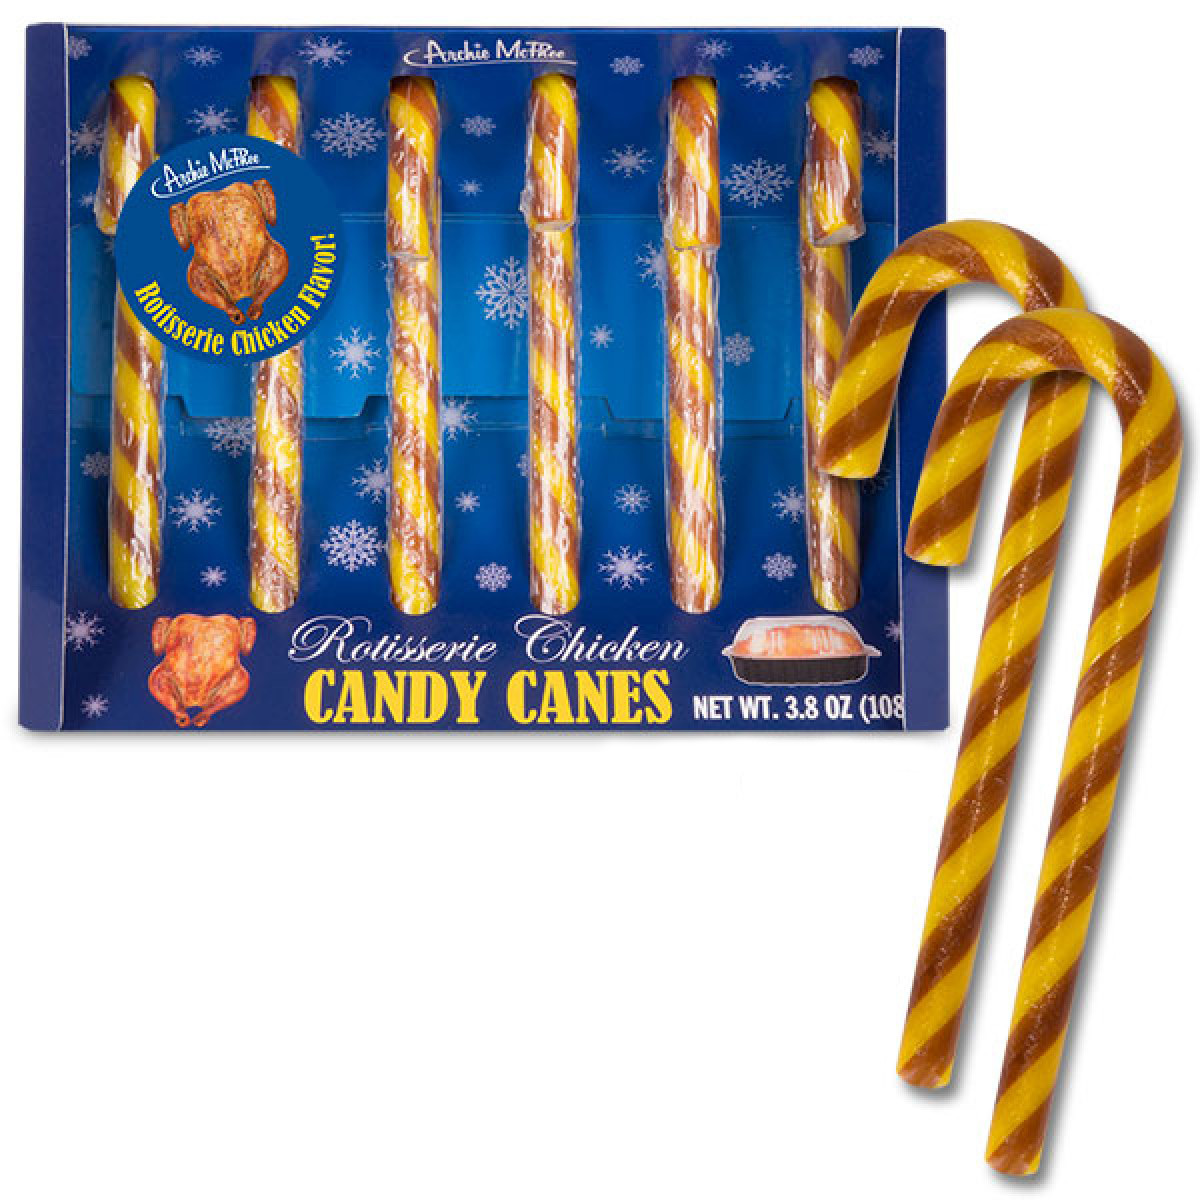 Rotisserie Chicken Candy Canes The Green Head